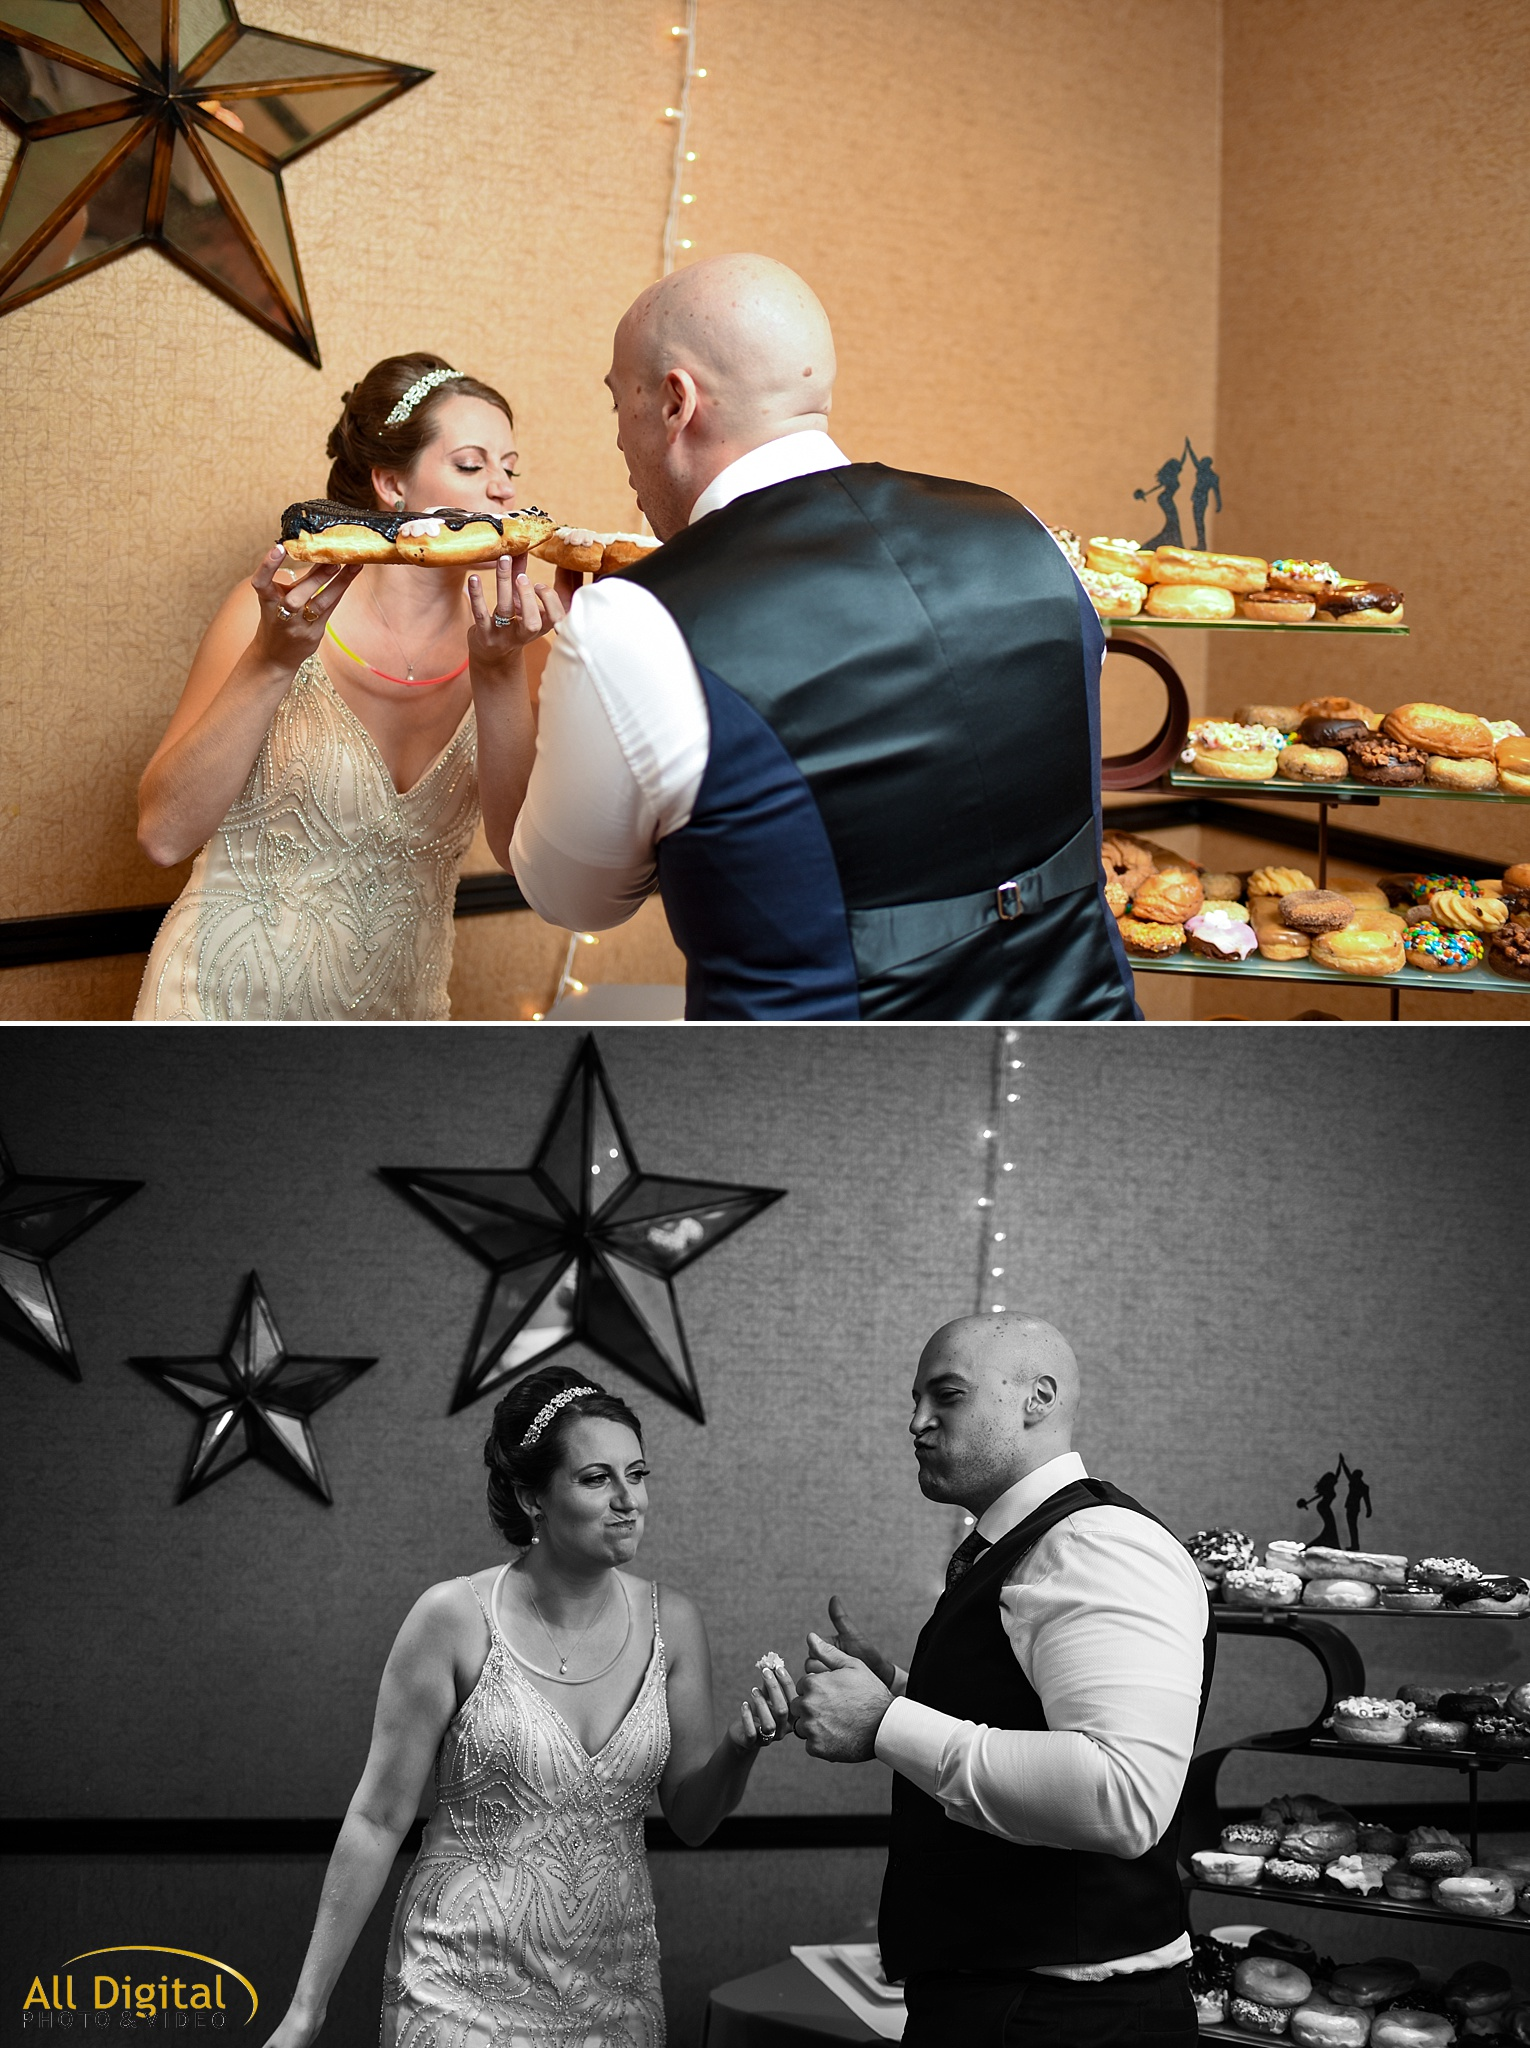 Mary & Jeremy having donuts instead of cake at the Golden Hotel photographed by All Digital Studios.